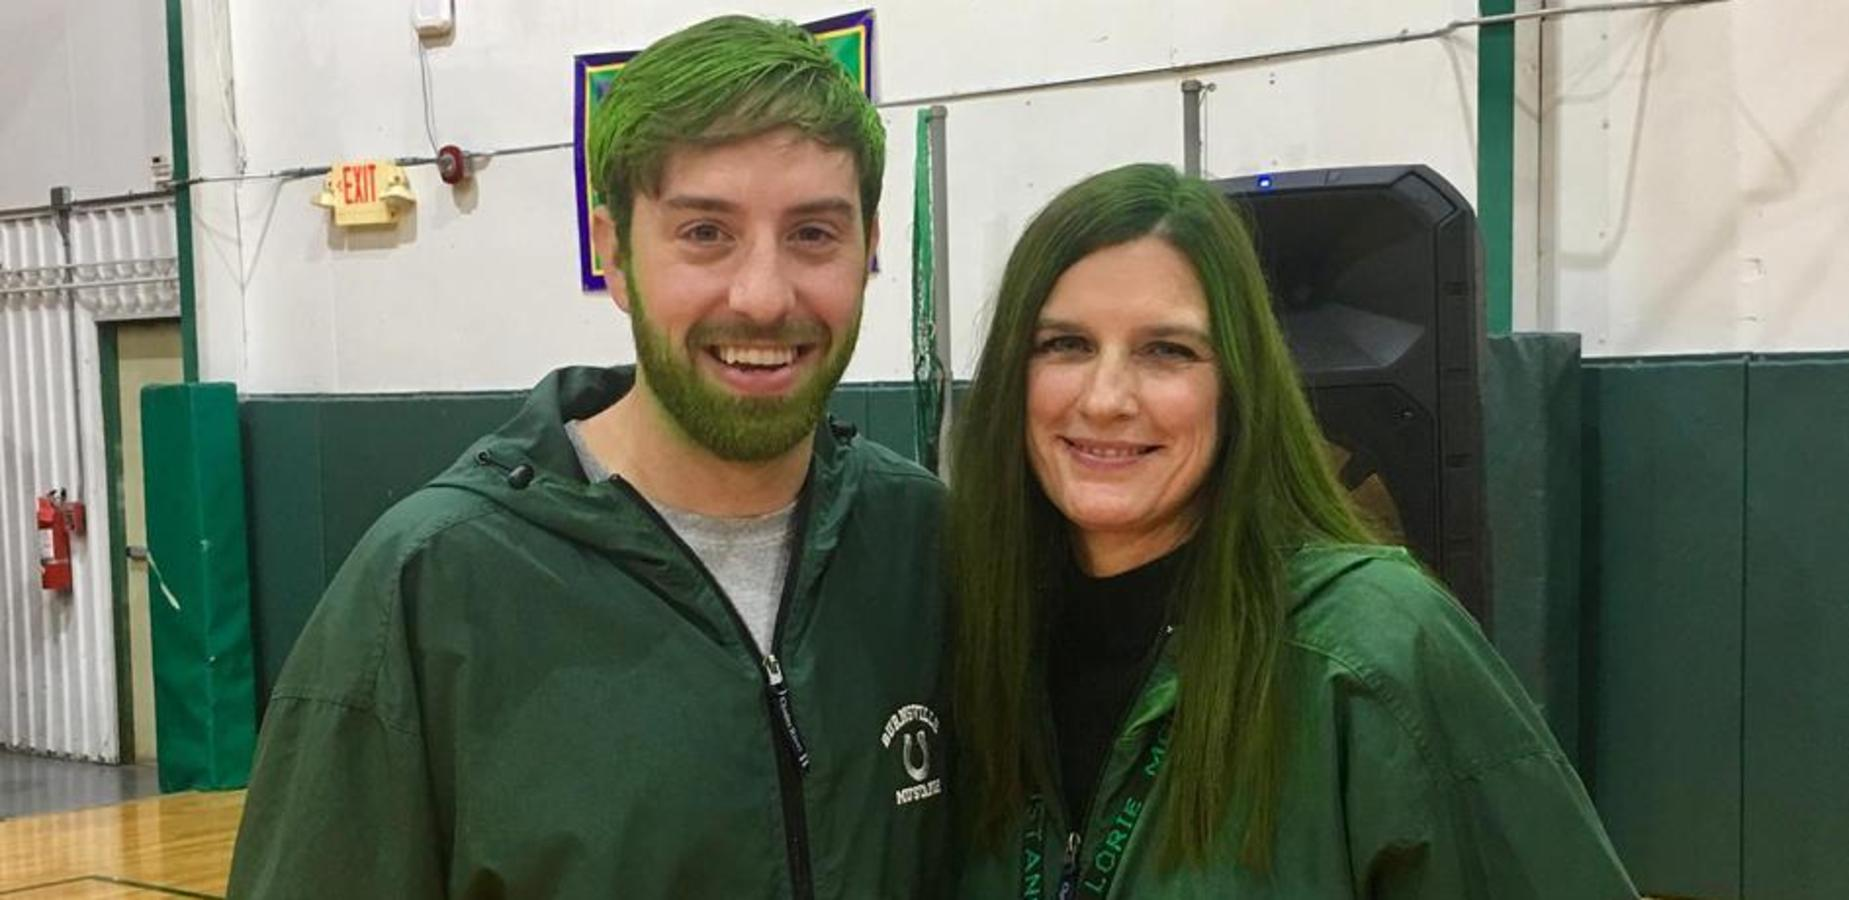 Principals Color Hair Green for State Test Results